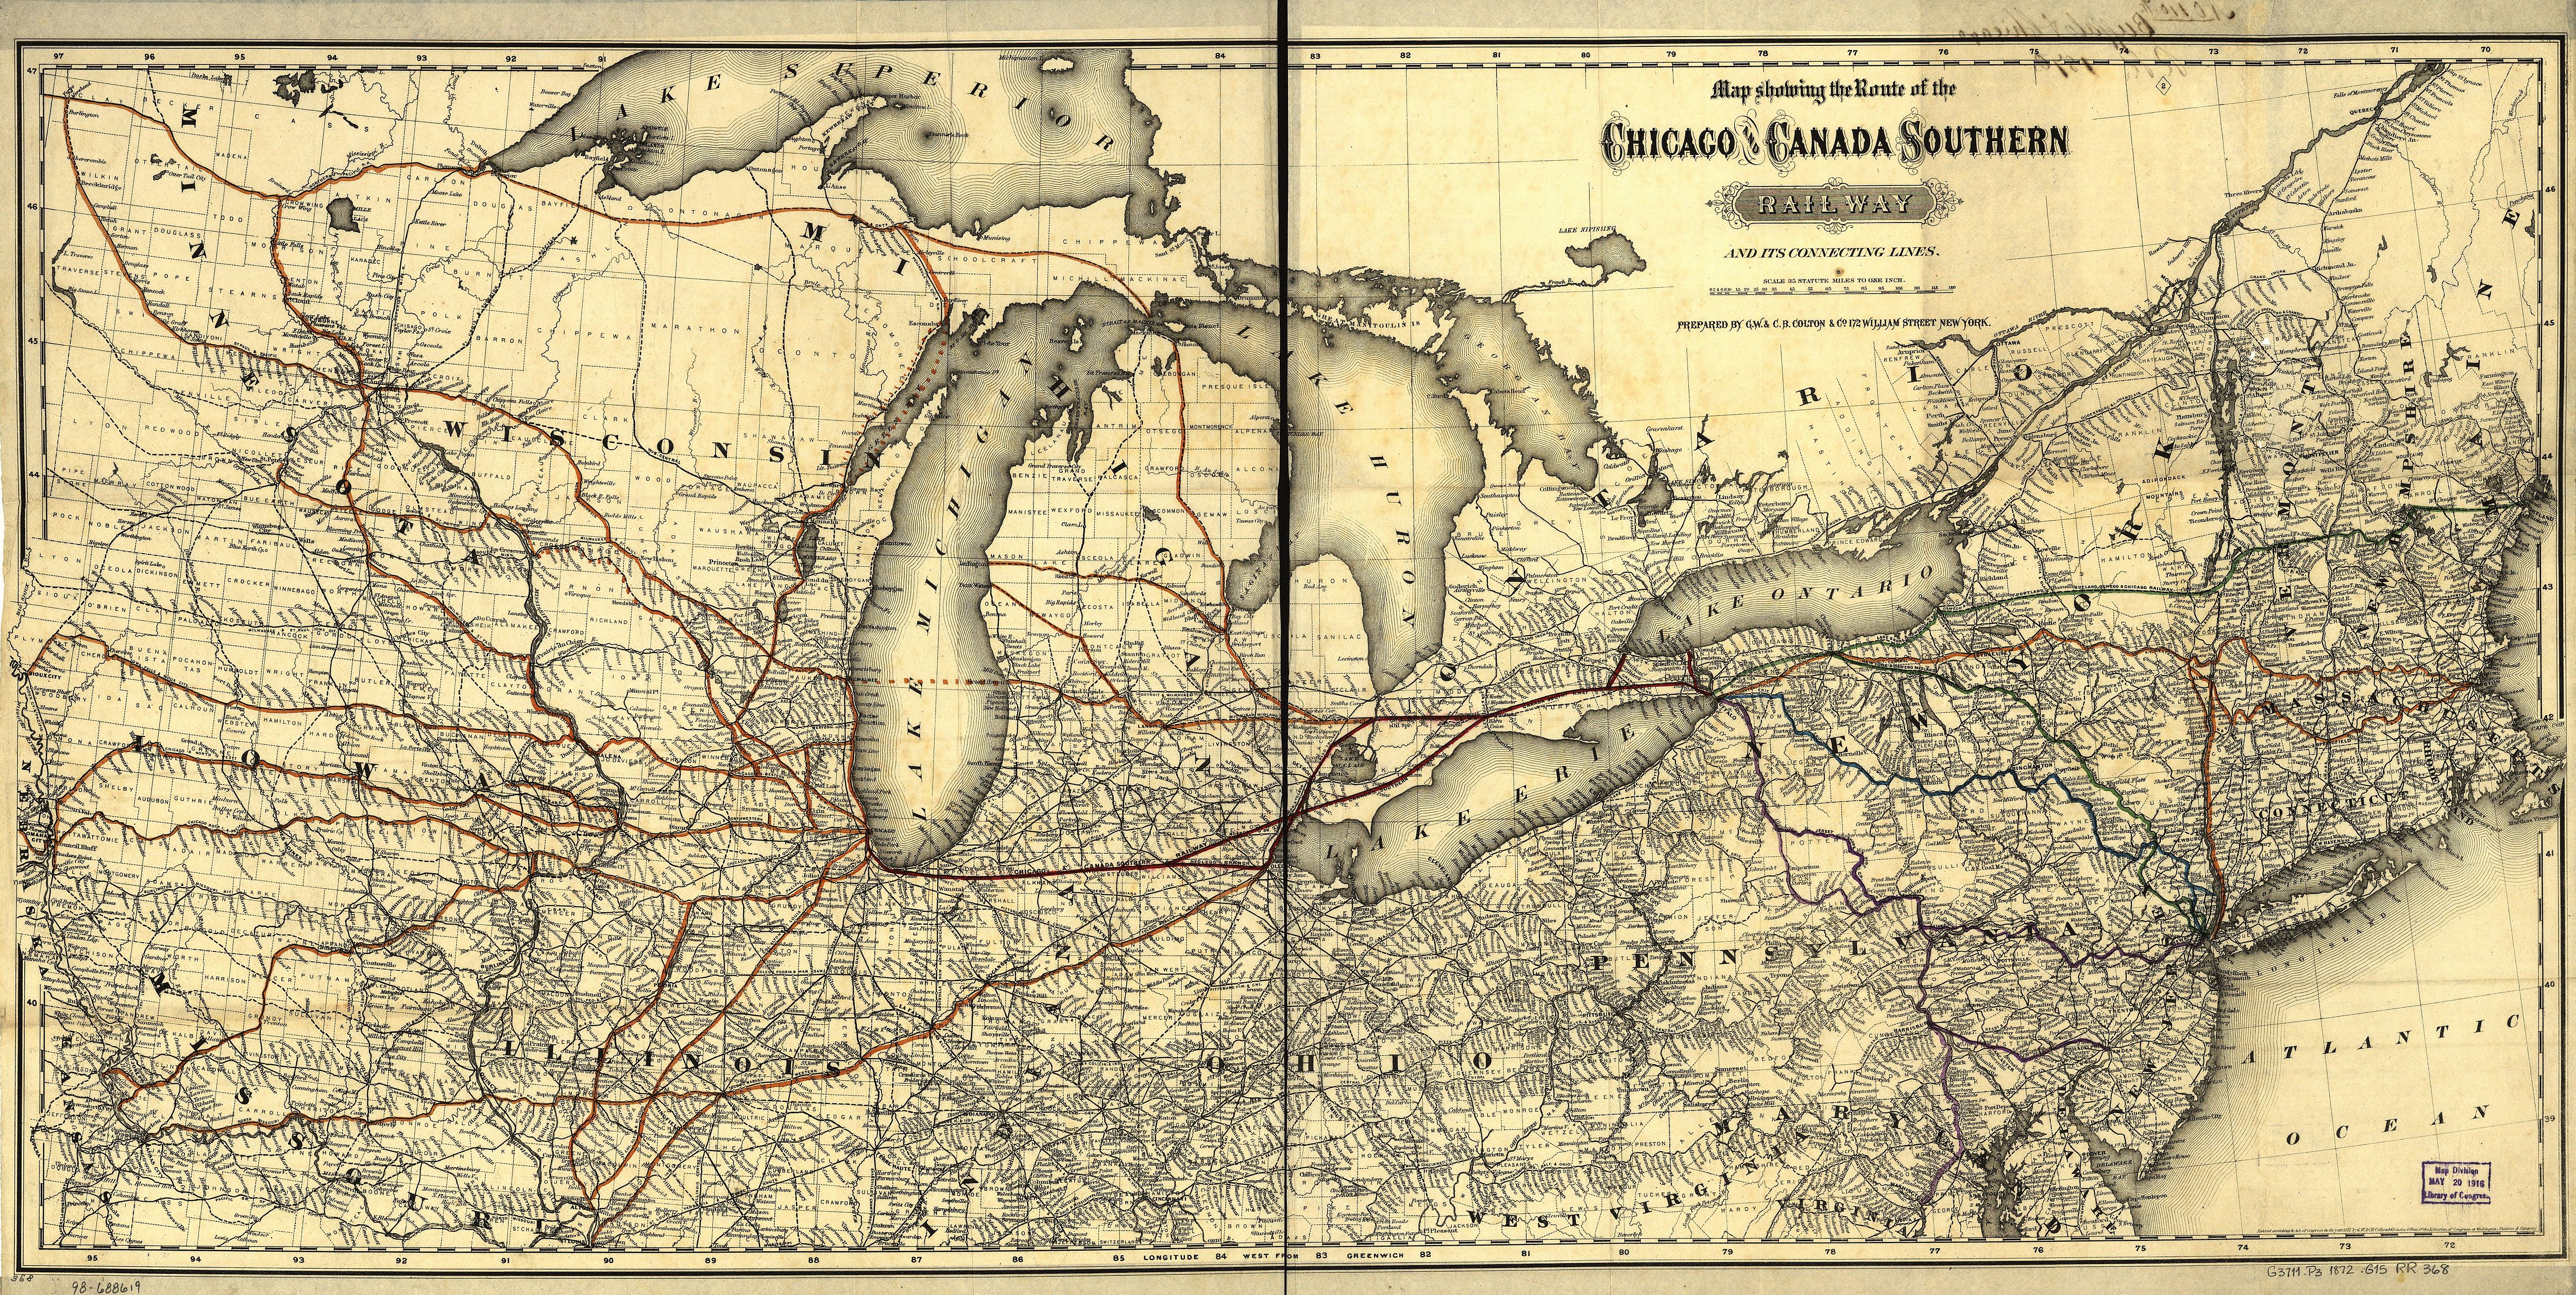 Most of present day Charlevoix County was originally part of Emmet County.